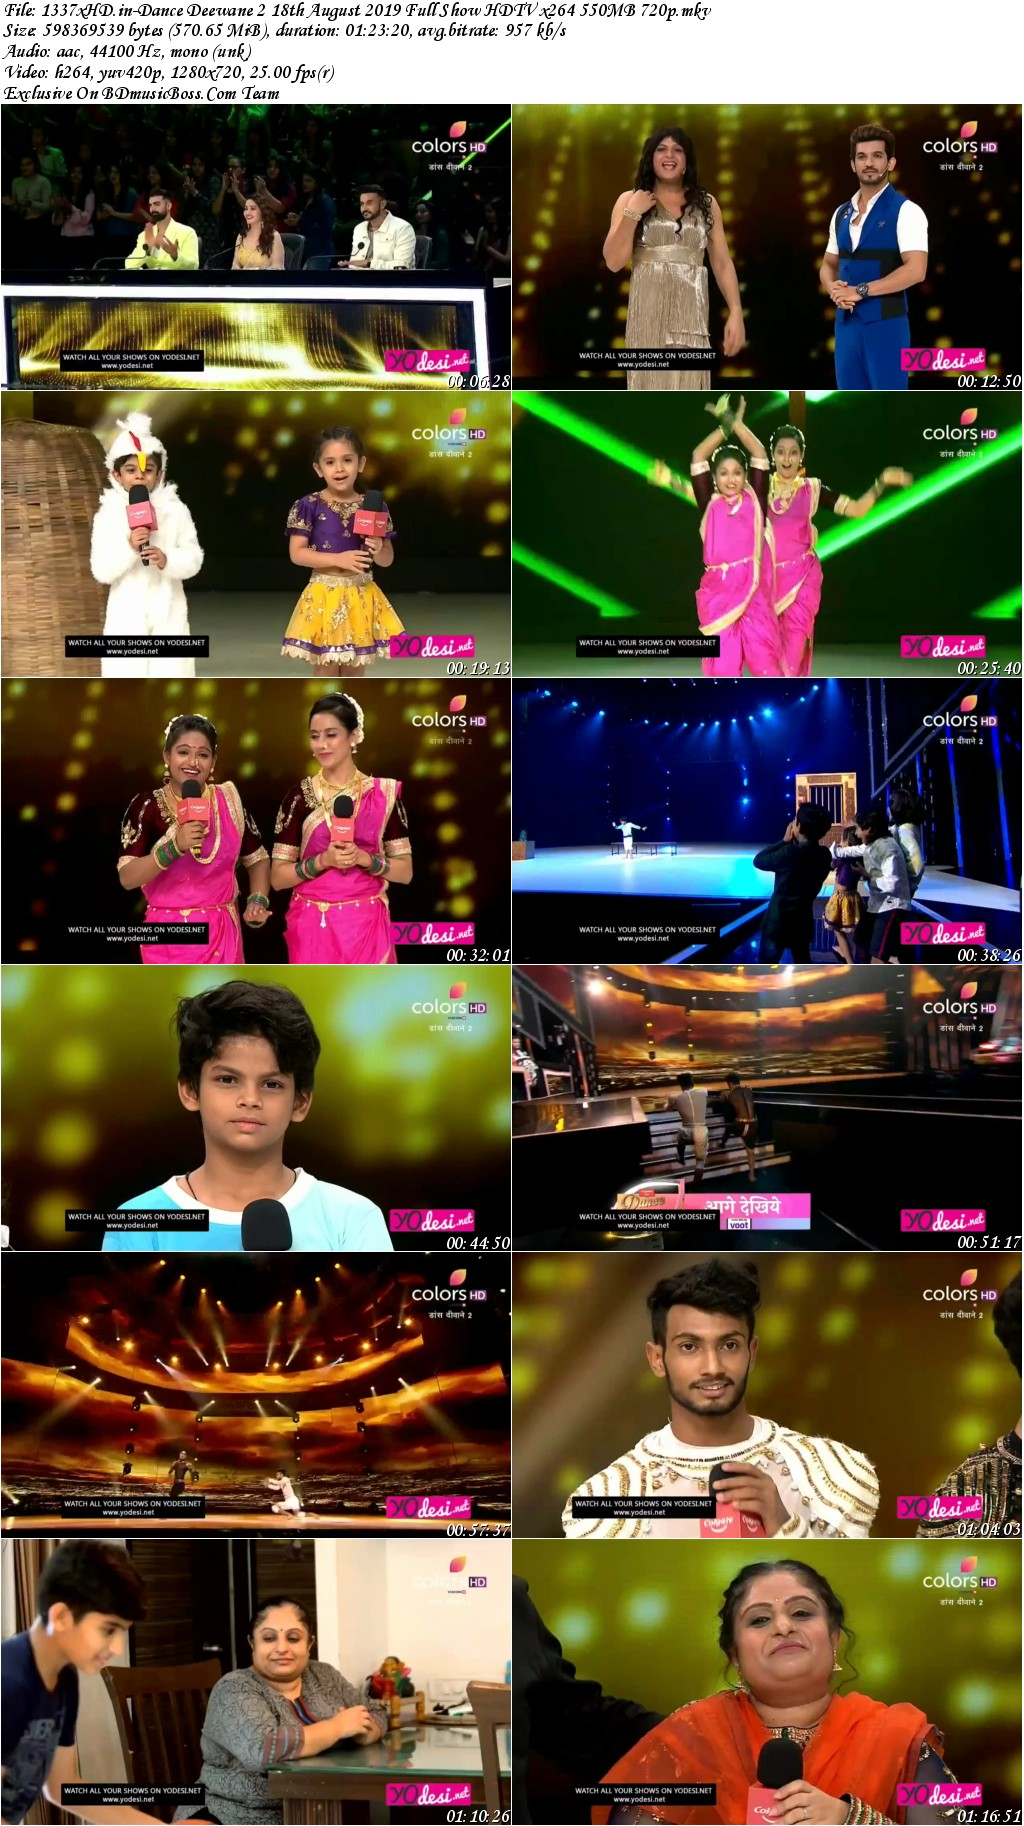 1337x-HD-in-Dance-Deewane-2-18th-August-2019-Full-Show-HDTV-x264-550-MB-720p-s